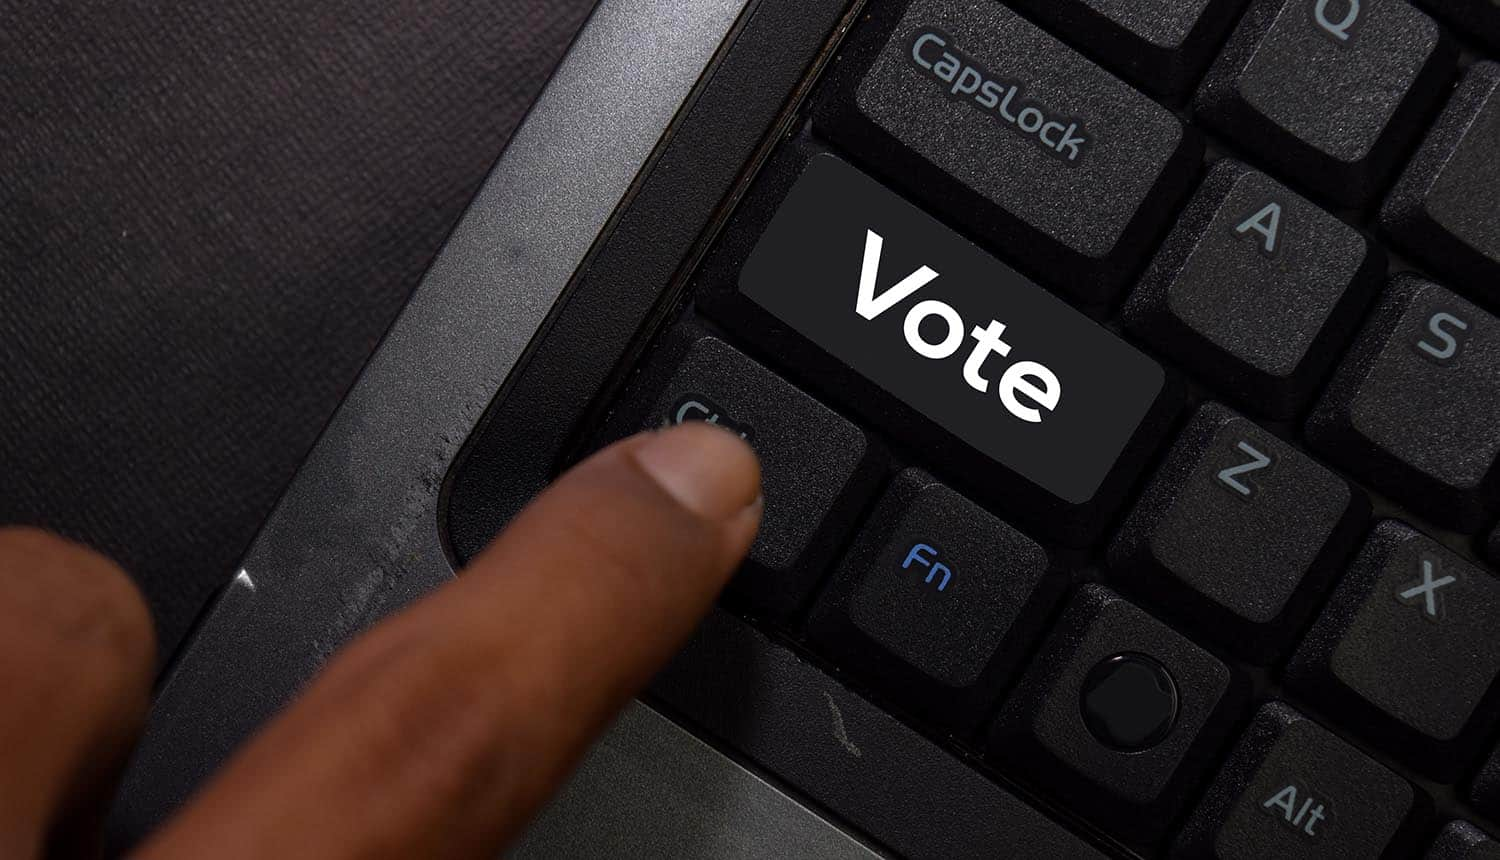 Key with text Vote on laptop keyboard showing danger of data breach of electoral voter data